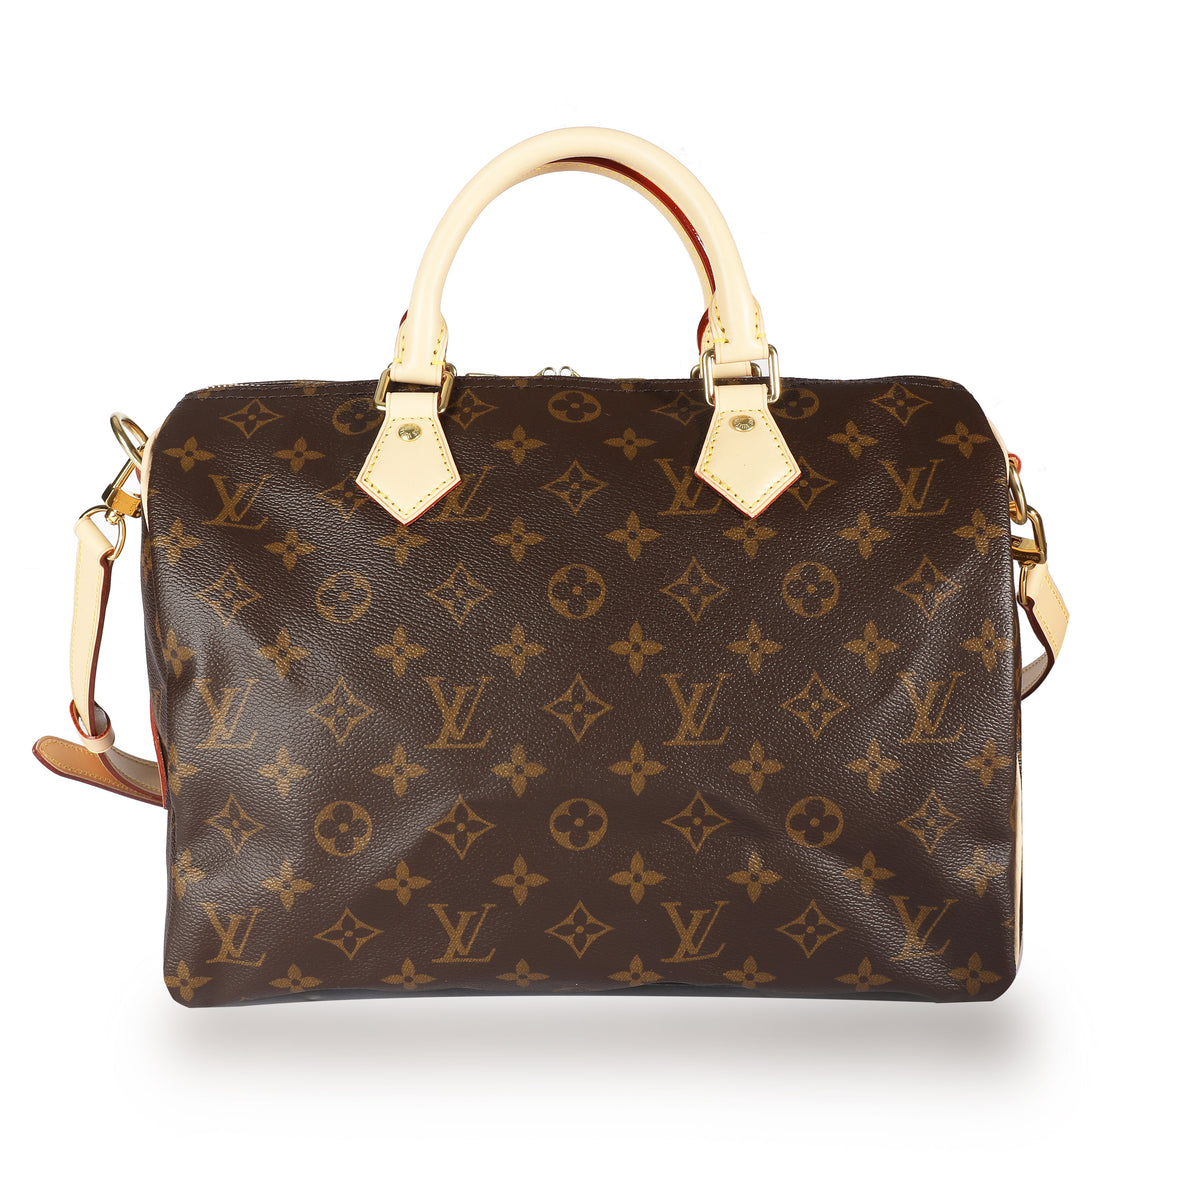 Louis Vuitton Monogram Canvas Speedy Bandoulière 30